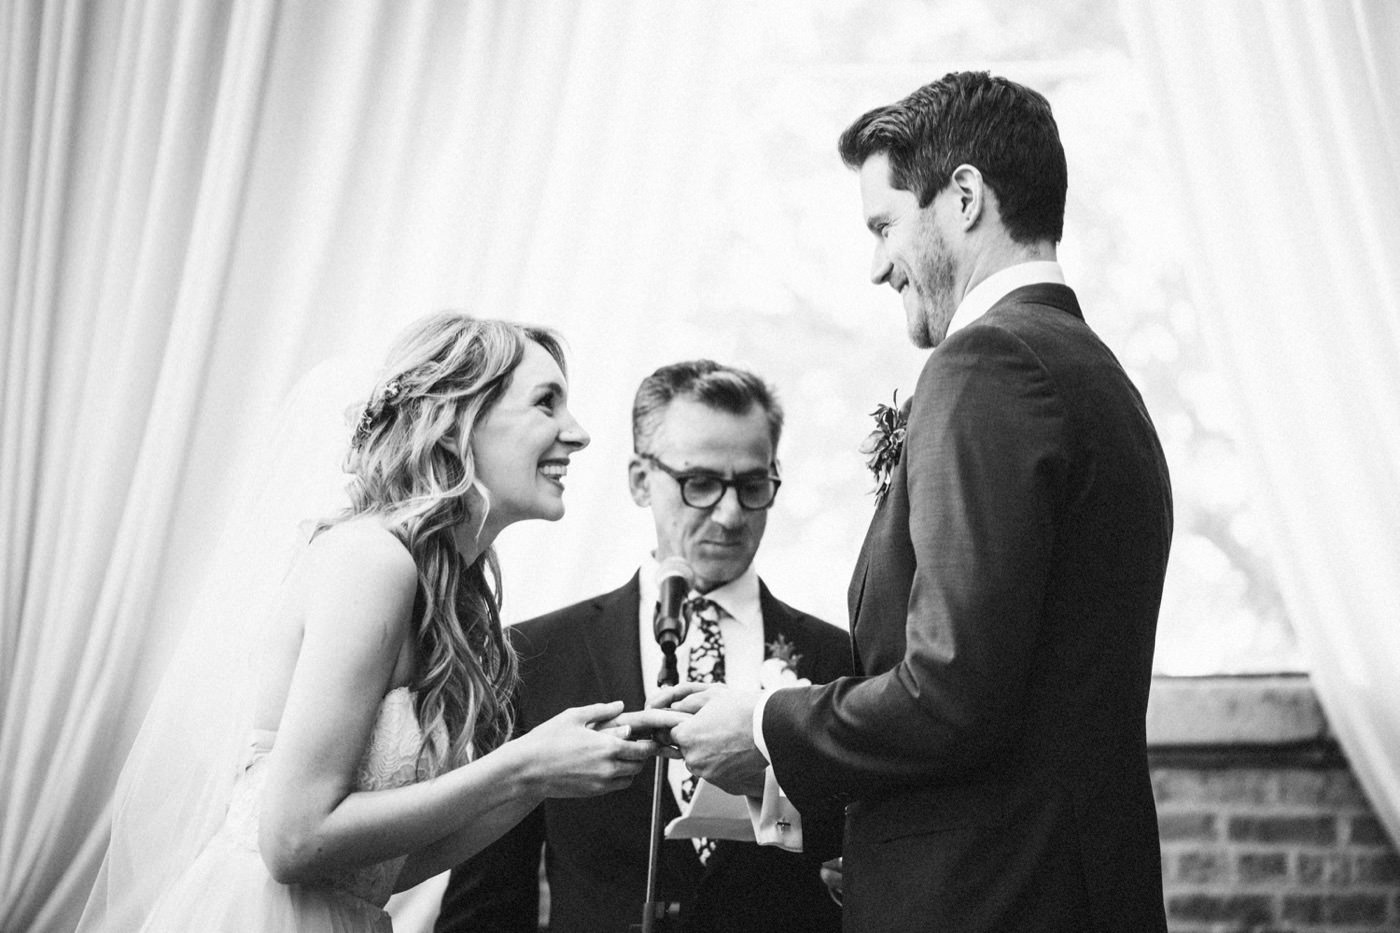 37_Lucy-Daniel-Chicago-Wedding-By-Sarah-Katherine-Davis-Photography0574bw.jpg